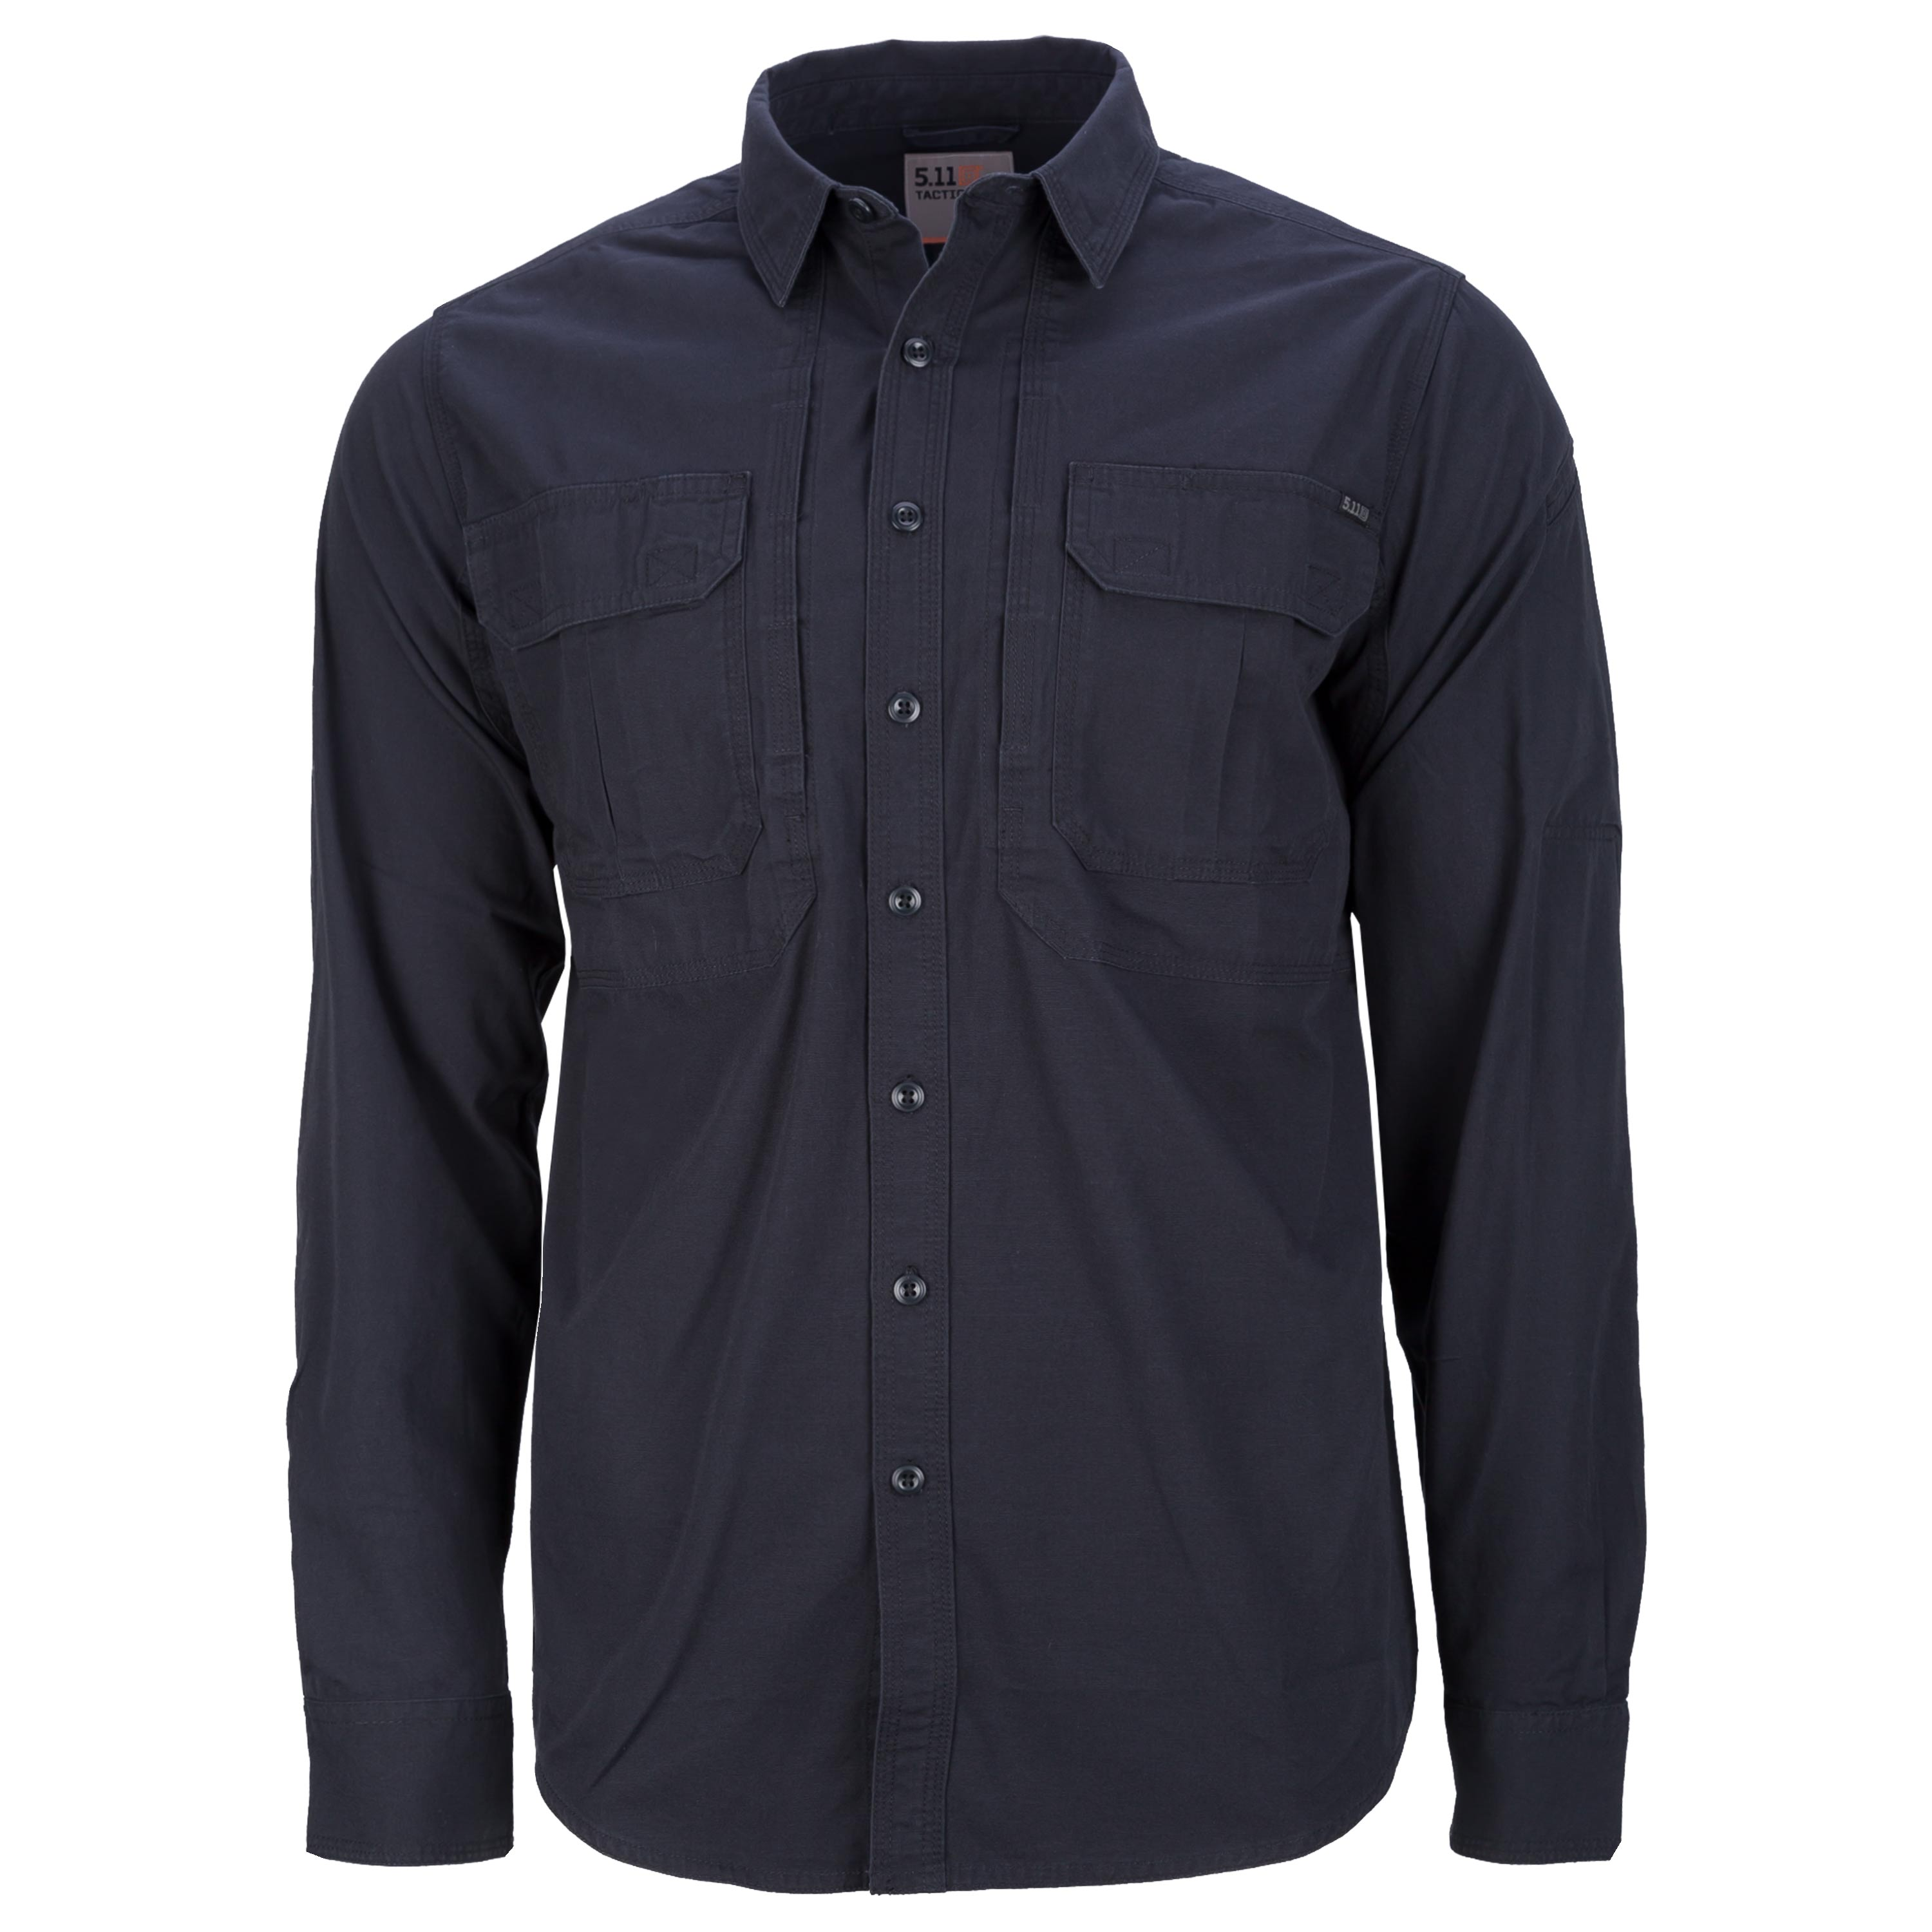 5.11 Hemd Expedition Longsleeve Shirt stone wash black ash